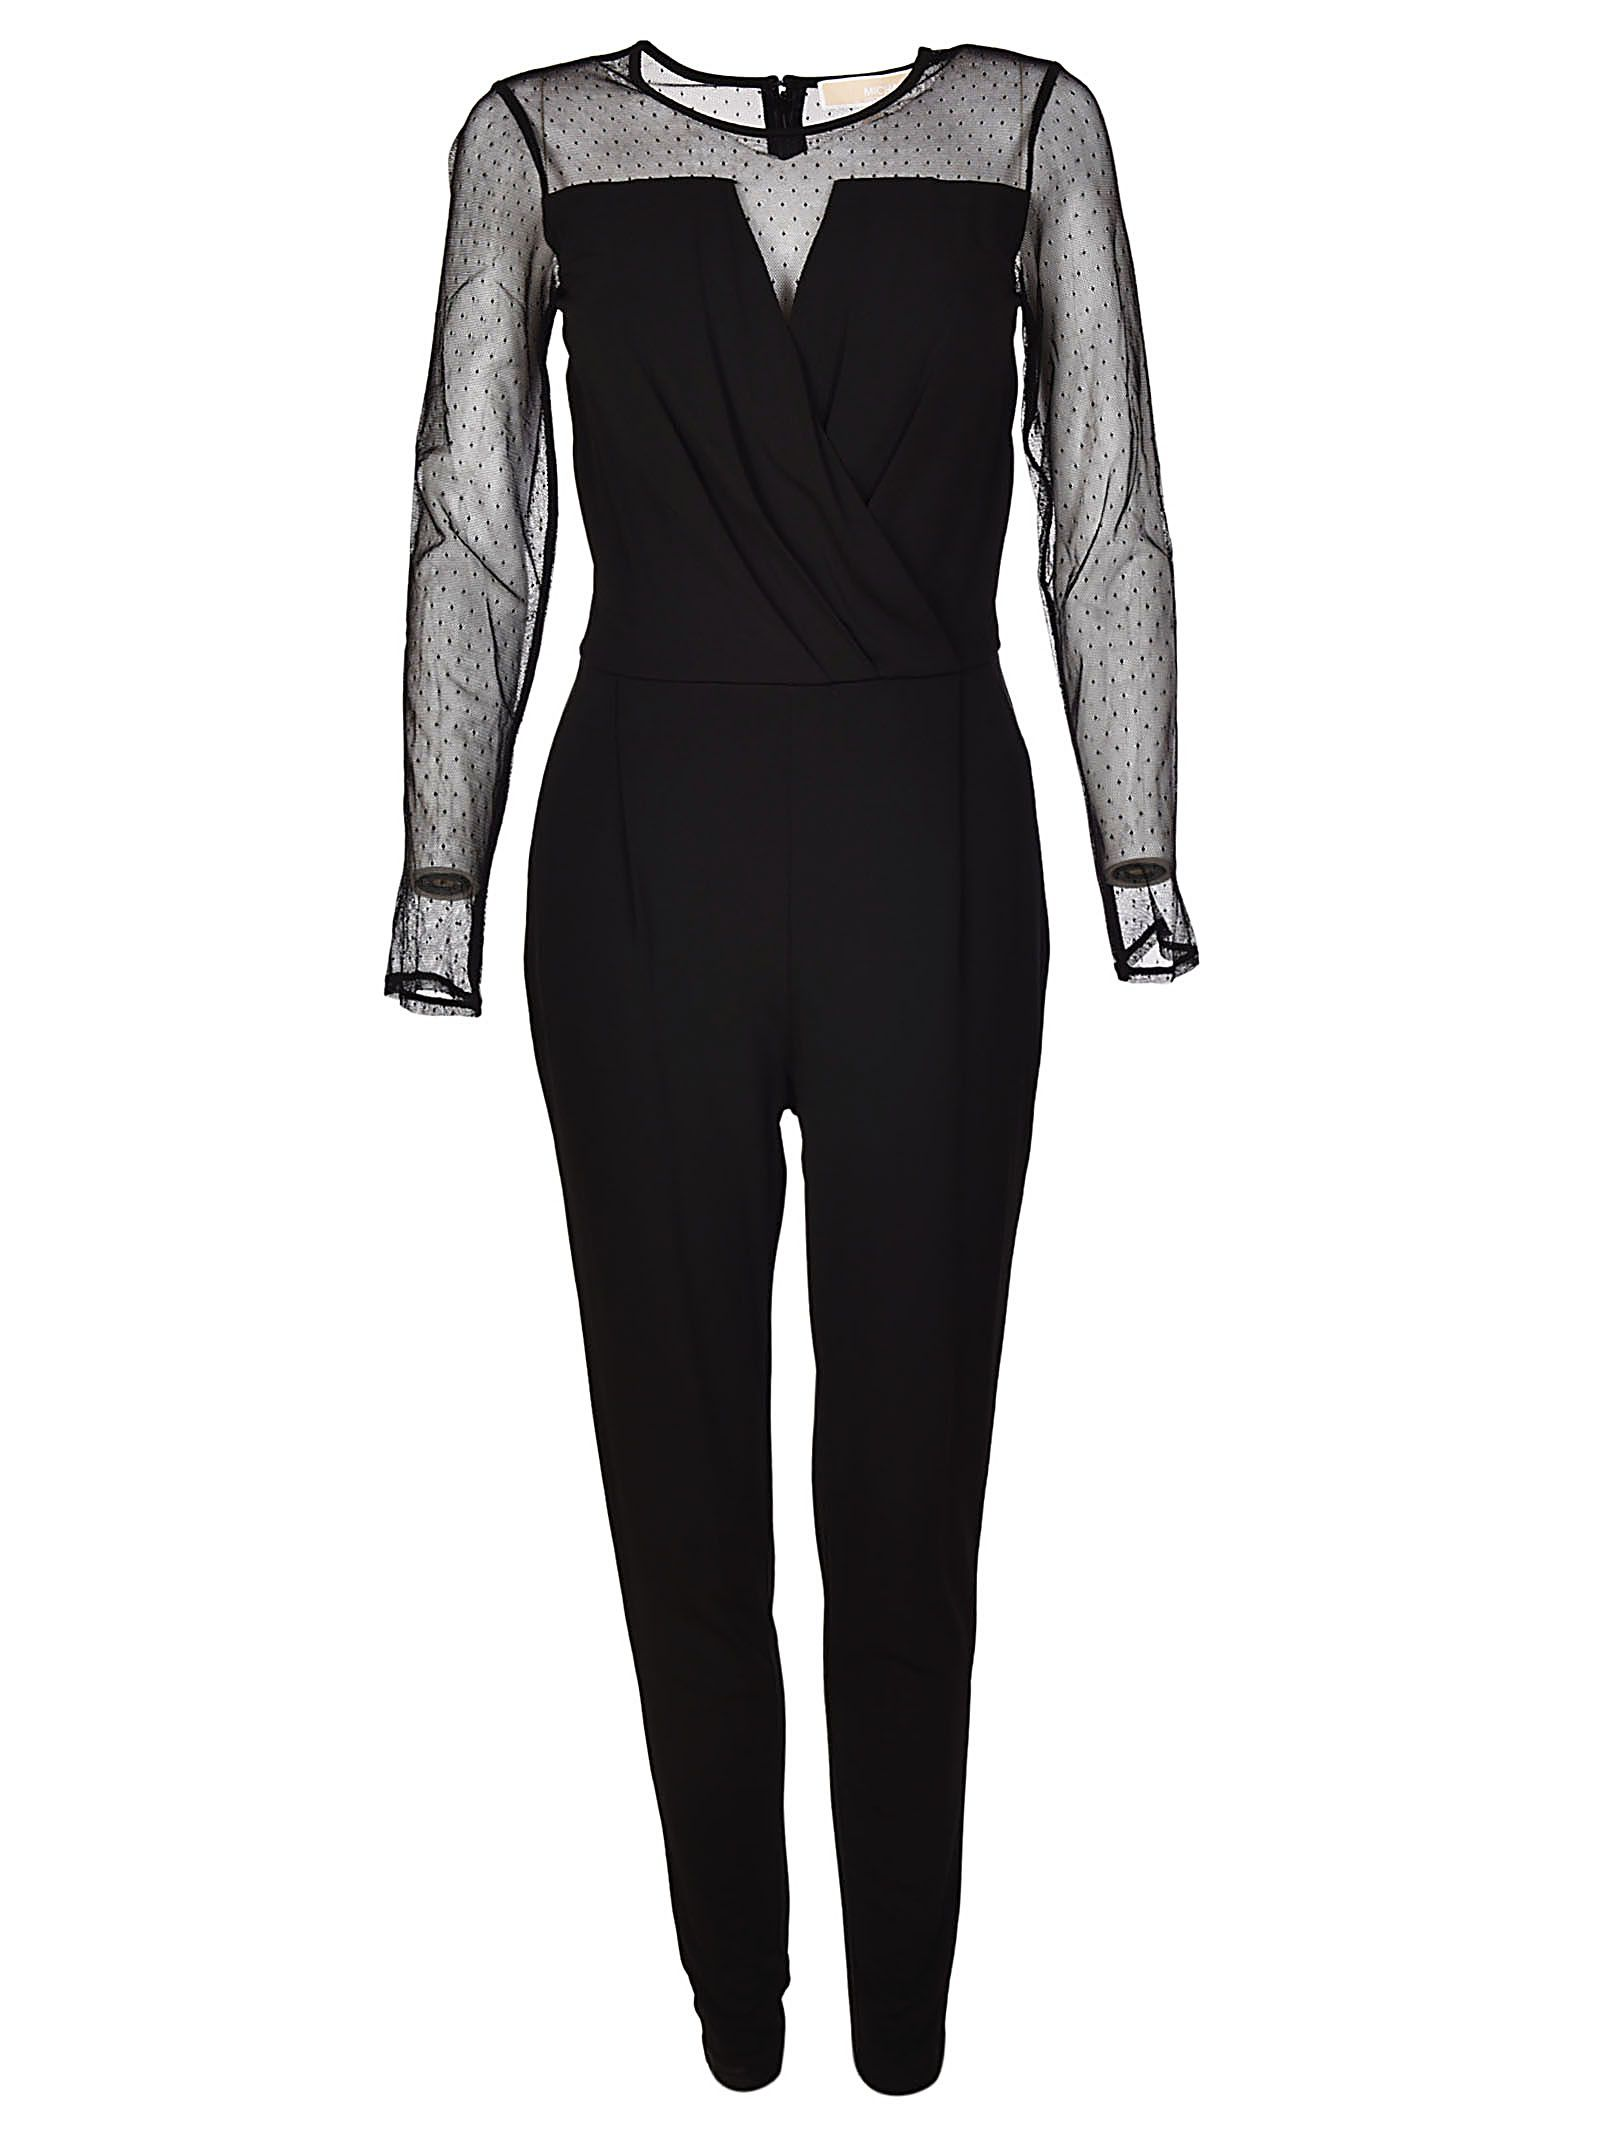 Michael Kors Meshed Top Jumpsuit